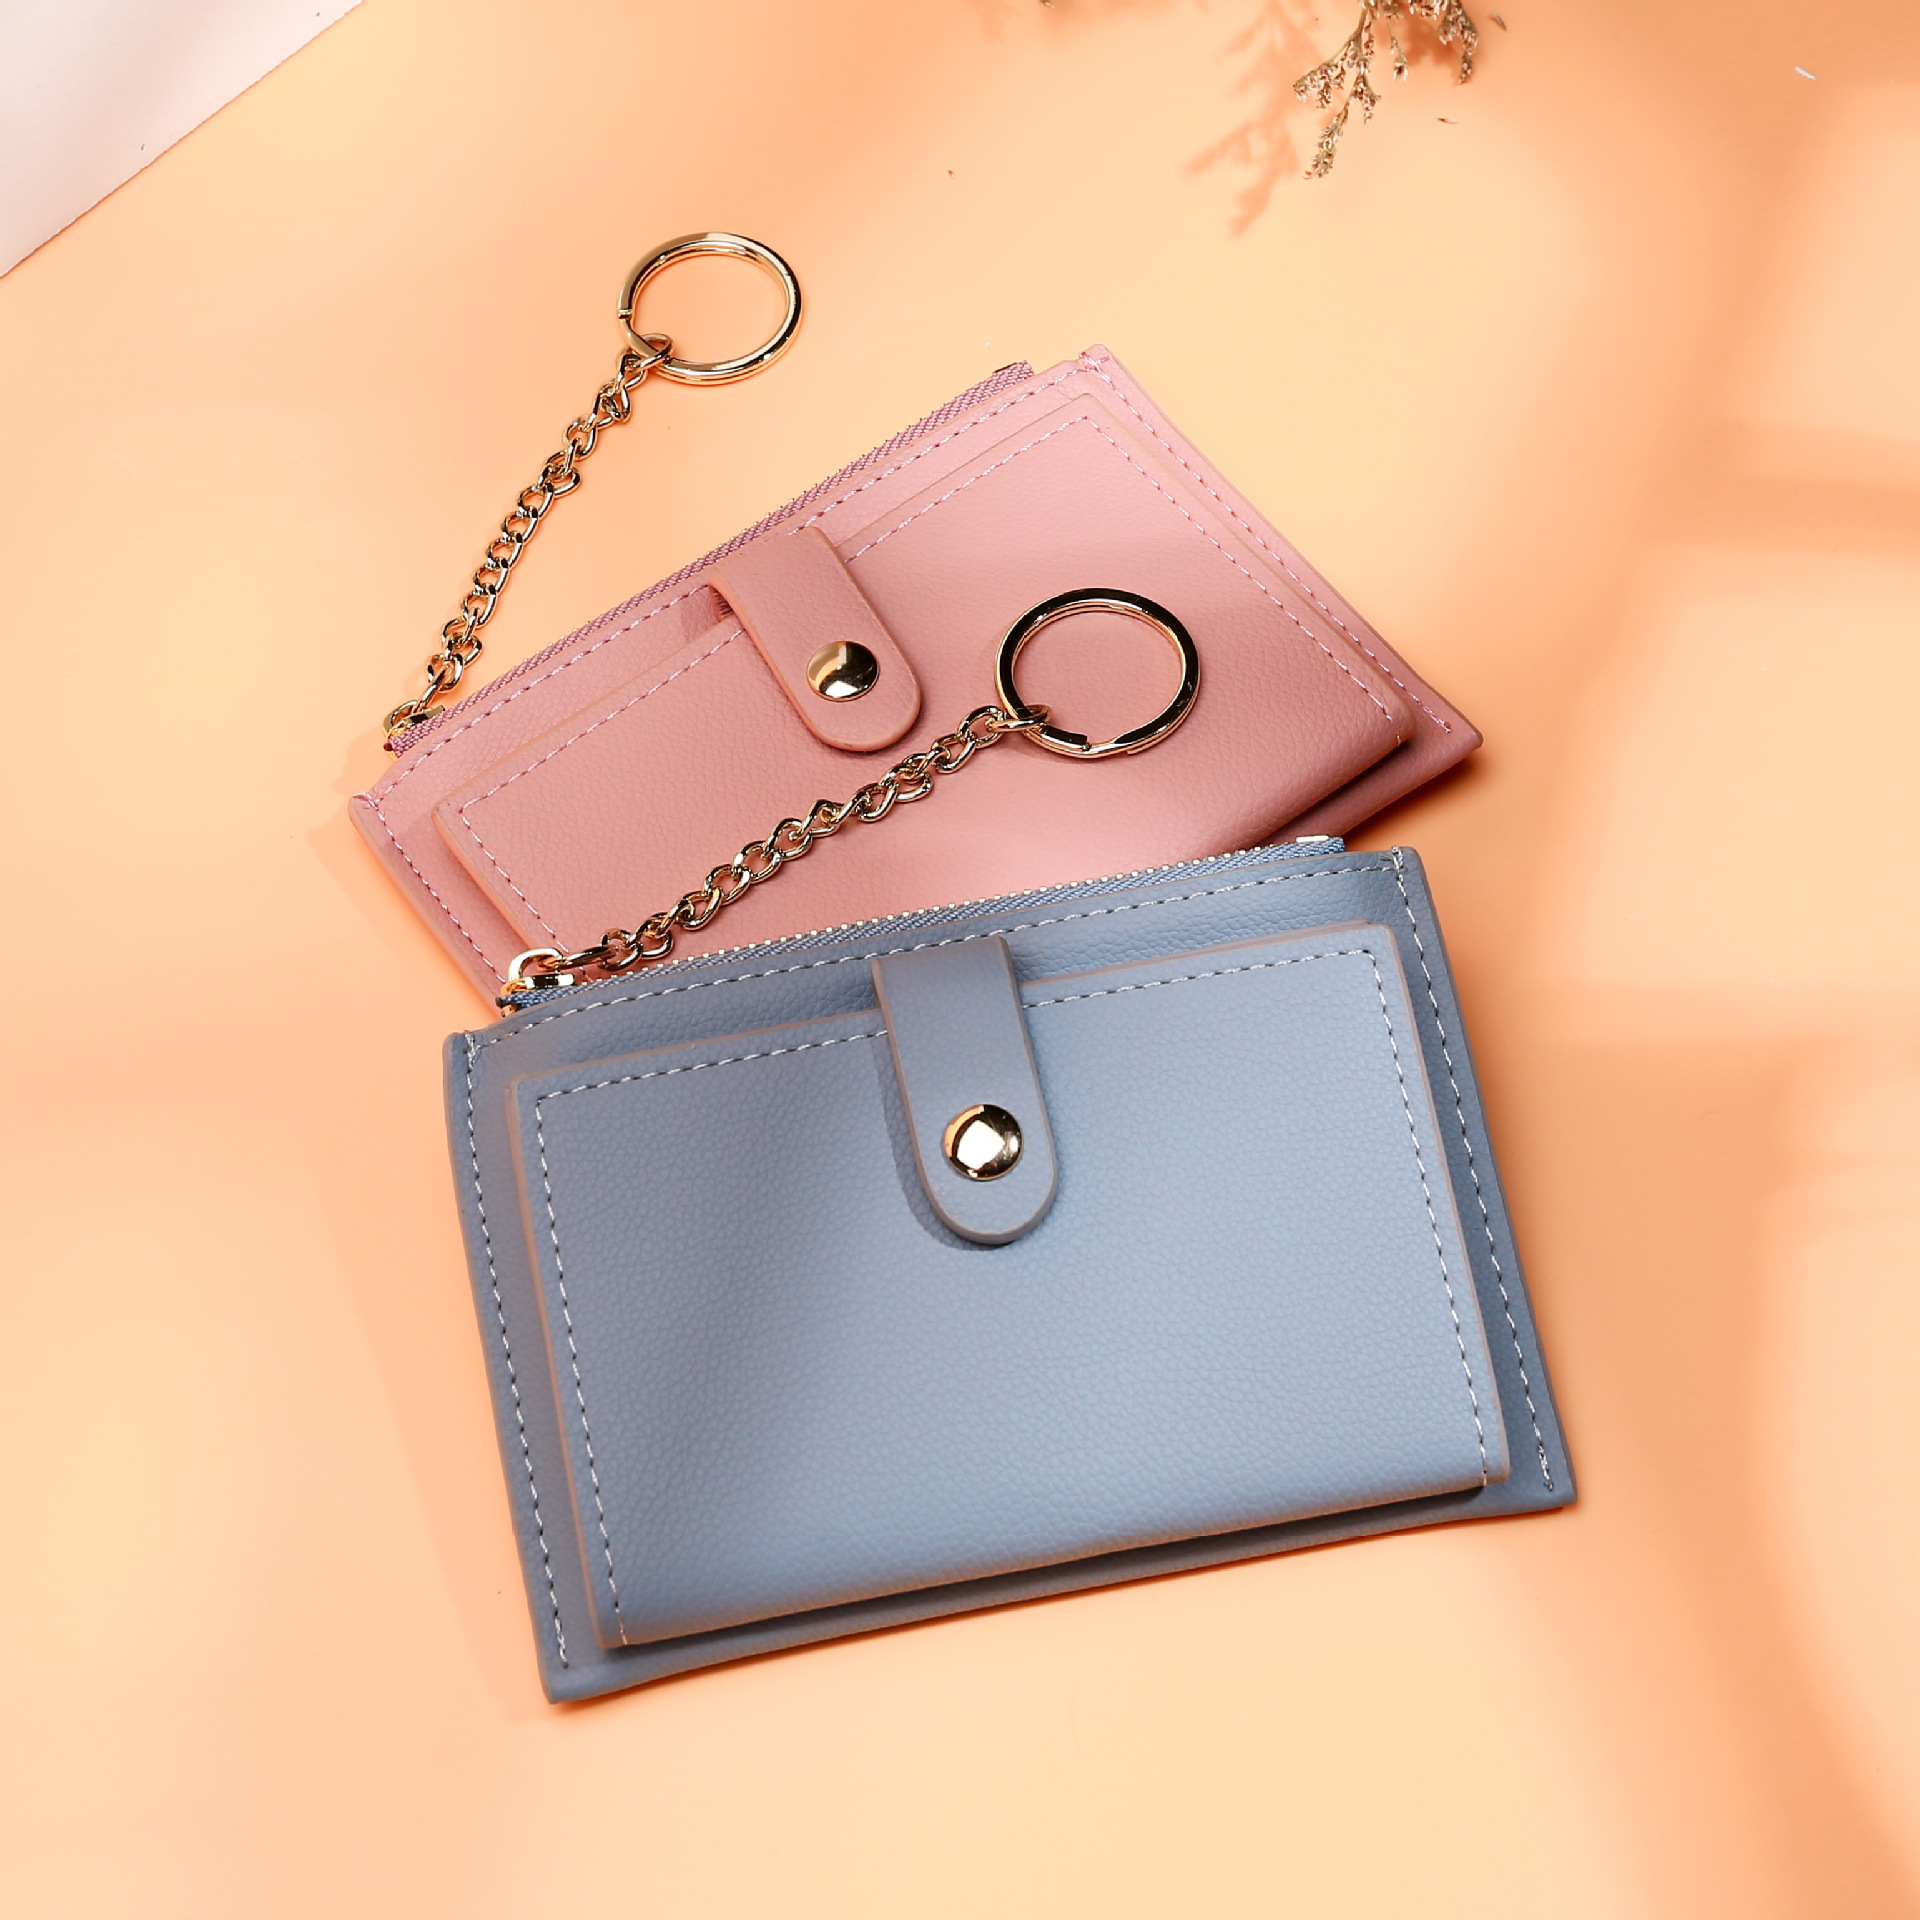 2019 New Style Women's Short Coin Purse Korean-style Casual Zipper Coin Small Card Holder Spell Purse Women's